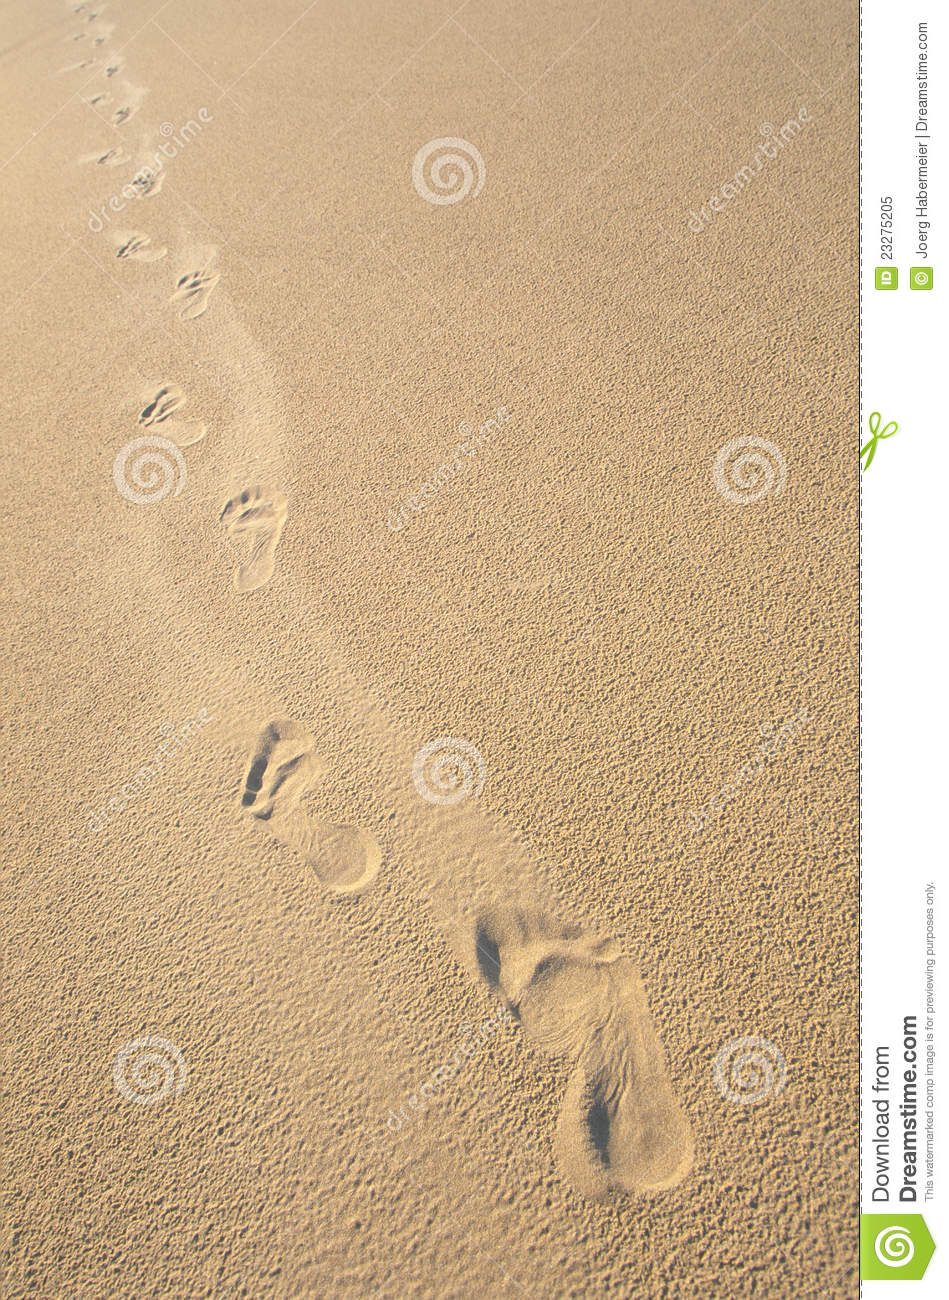 Foot Steps In Smooth, Beige Sand Royalty Free Stock Photo - Image: 23275205